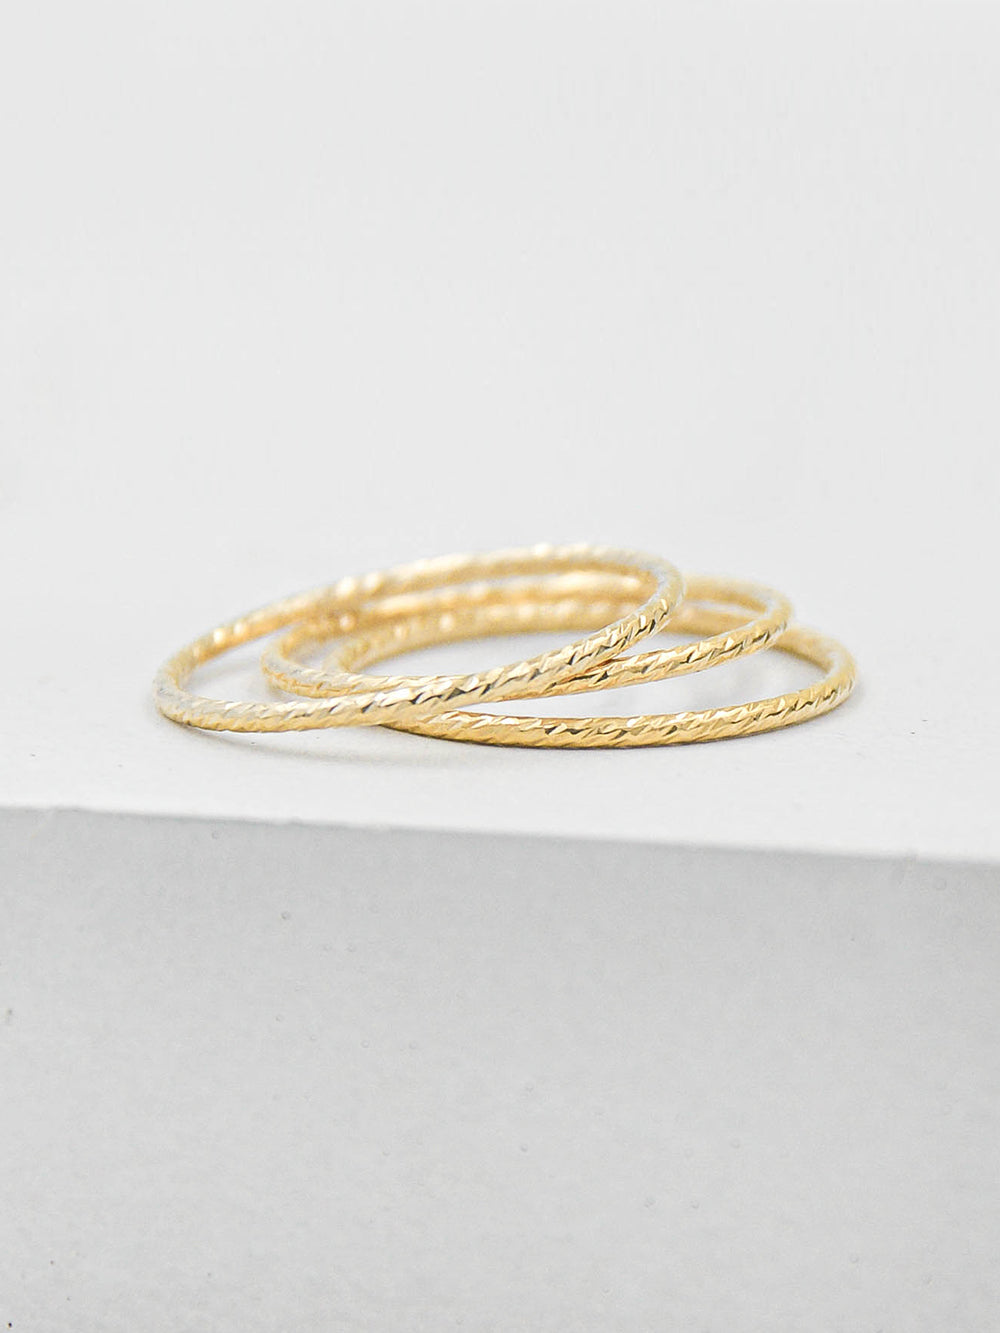 1mm Textured Stacker - Gold Filled